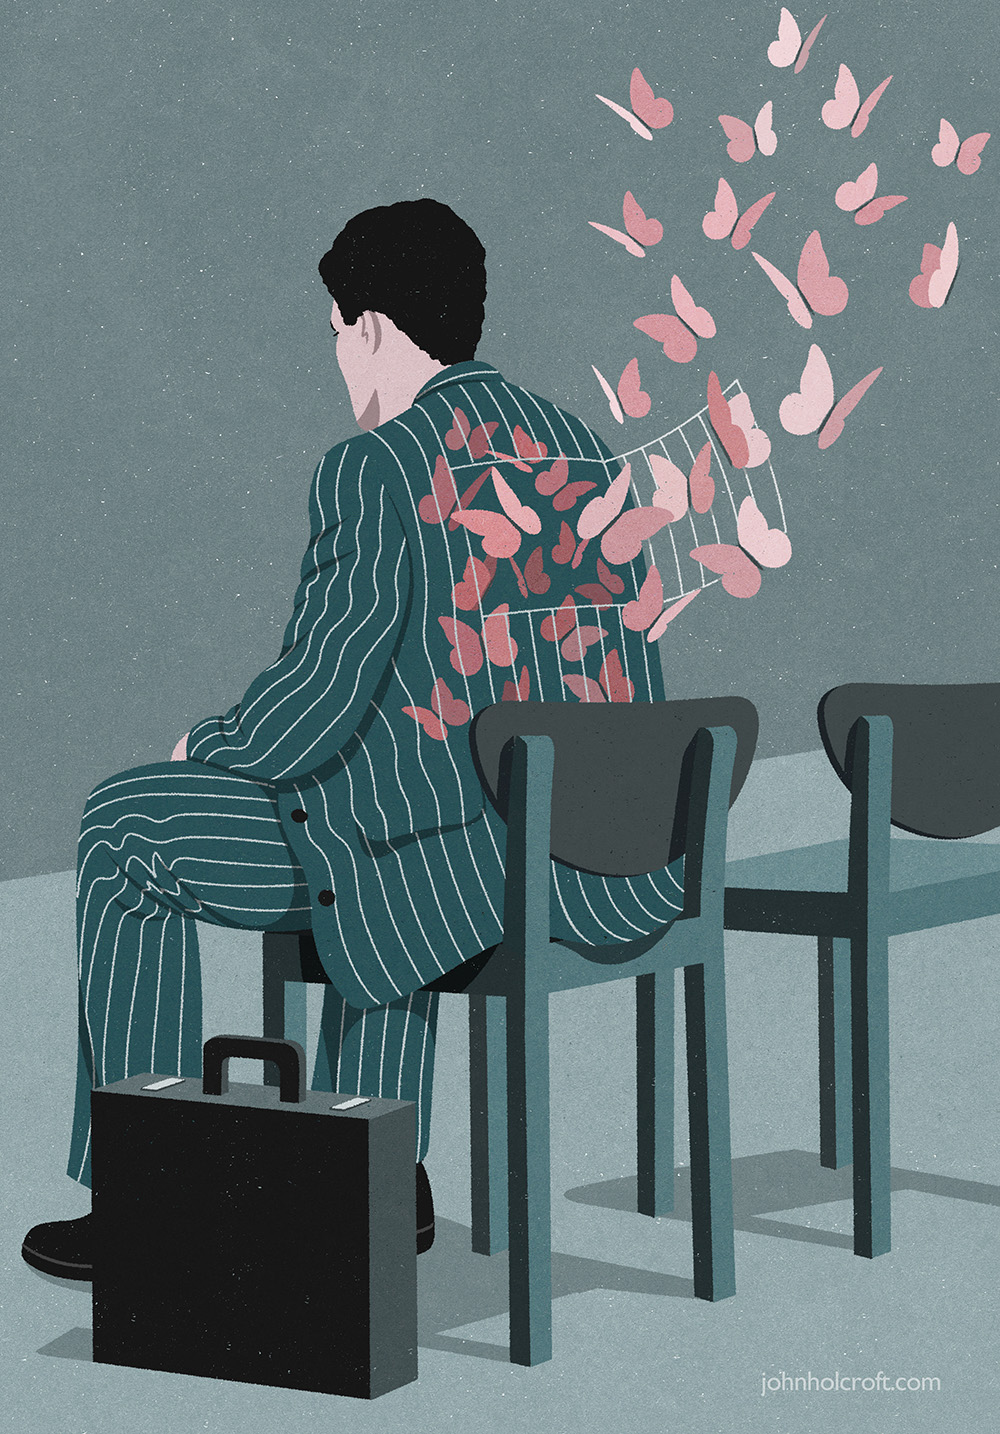 editorial illustration of man waiting for interview who is nervous